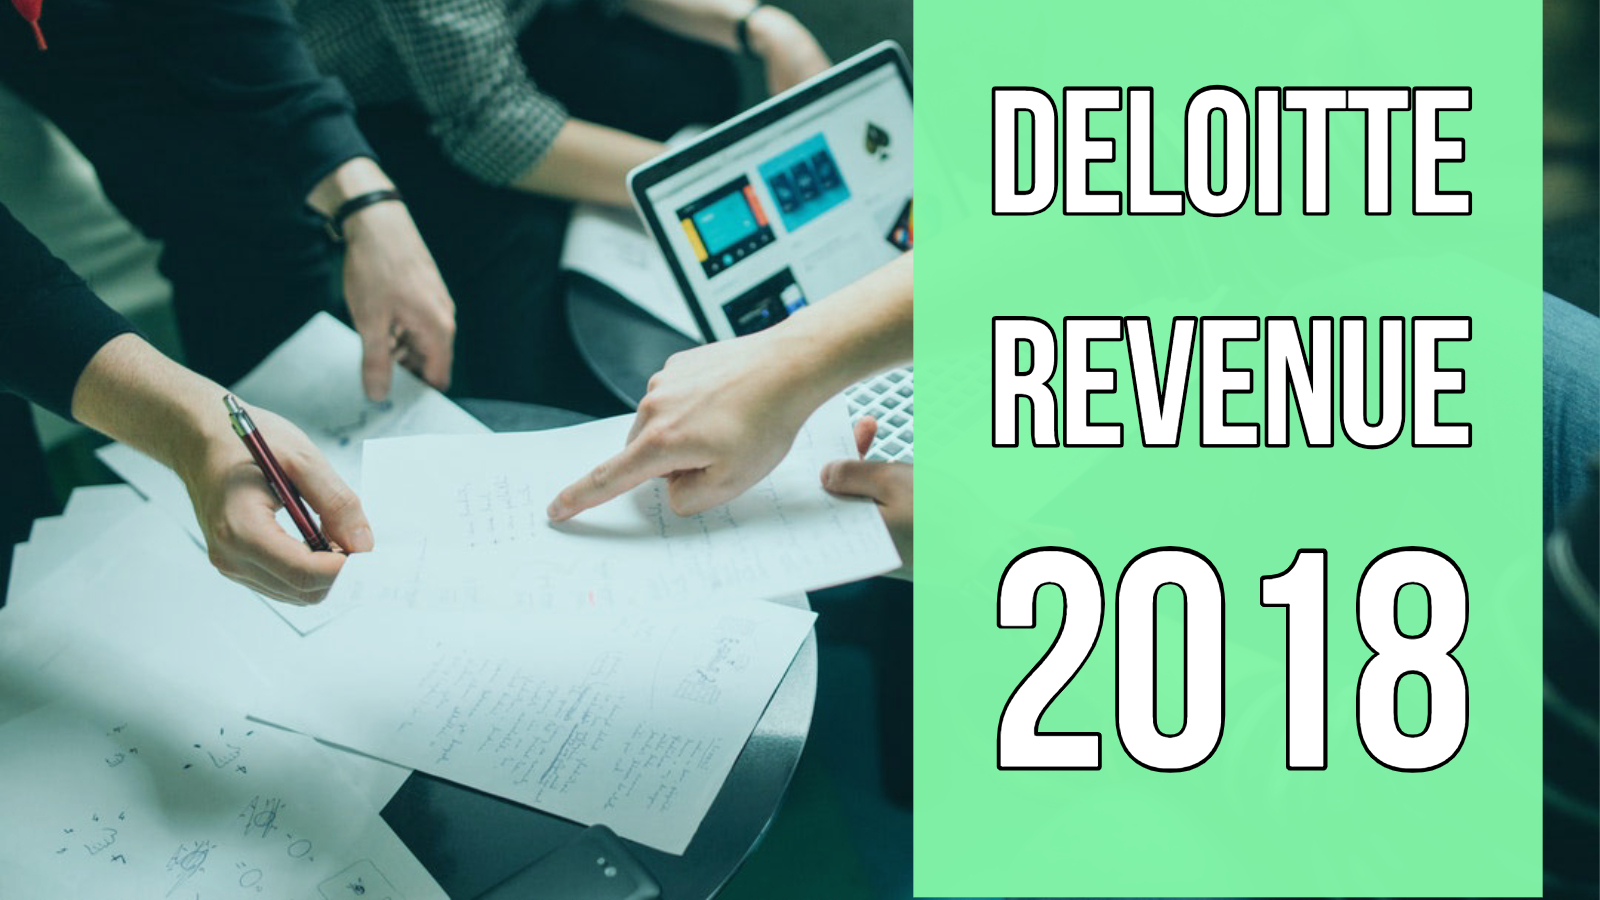 deloitte revenue 2018